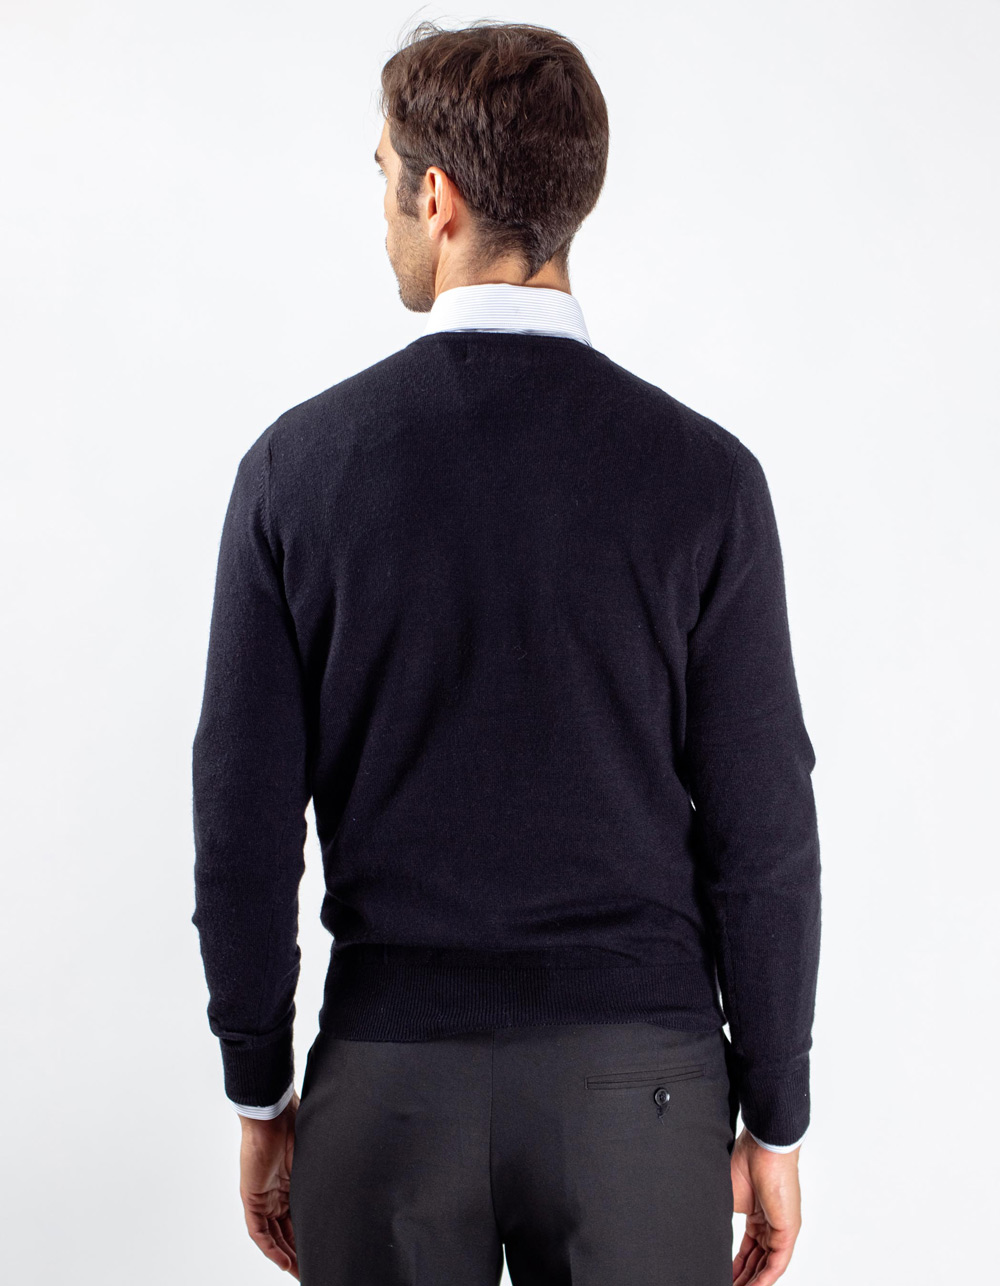 Jersey de cuello negro - Backside